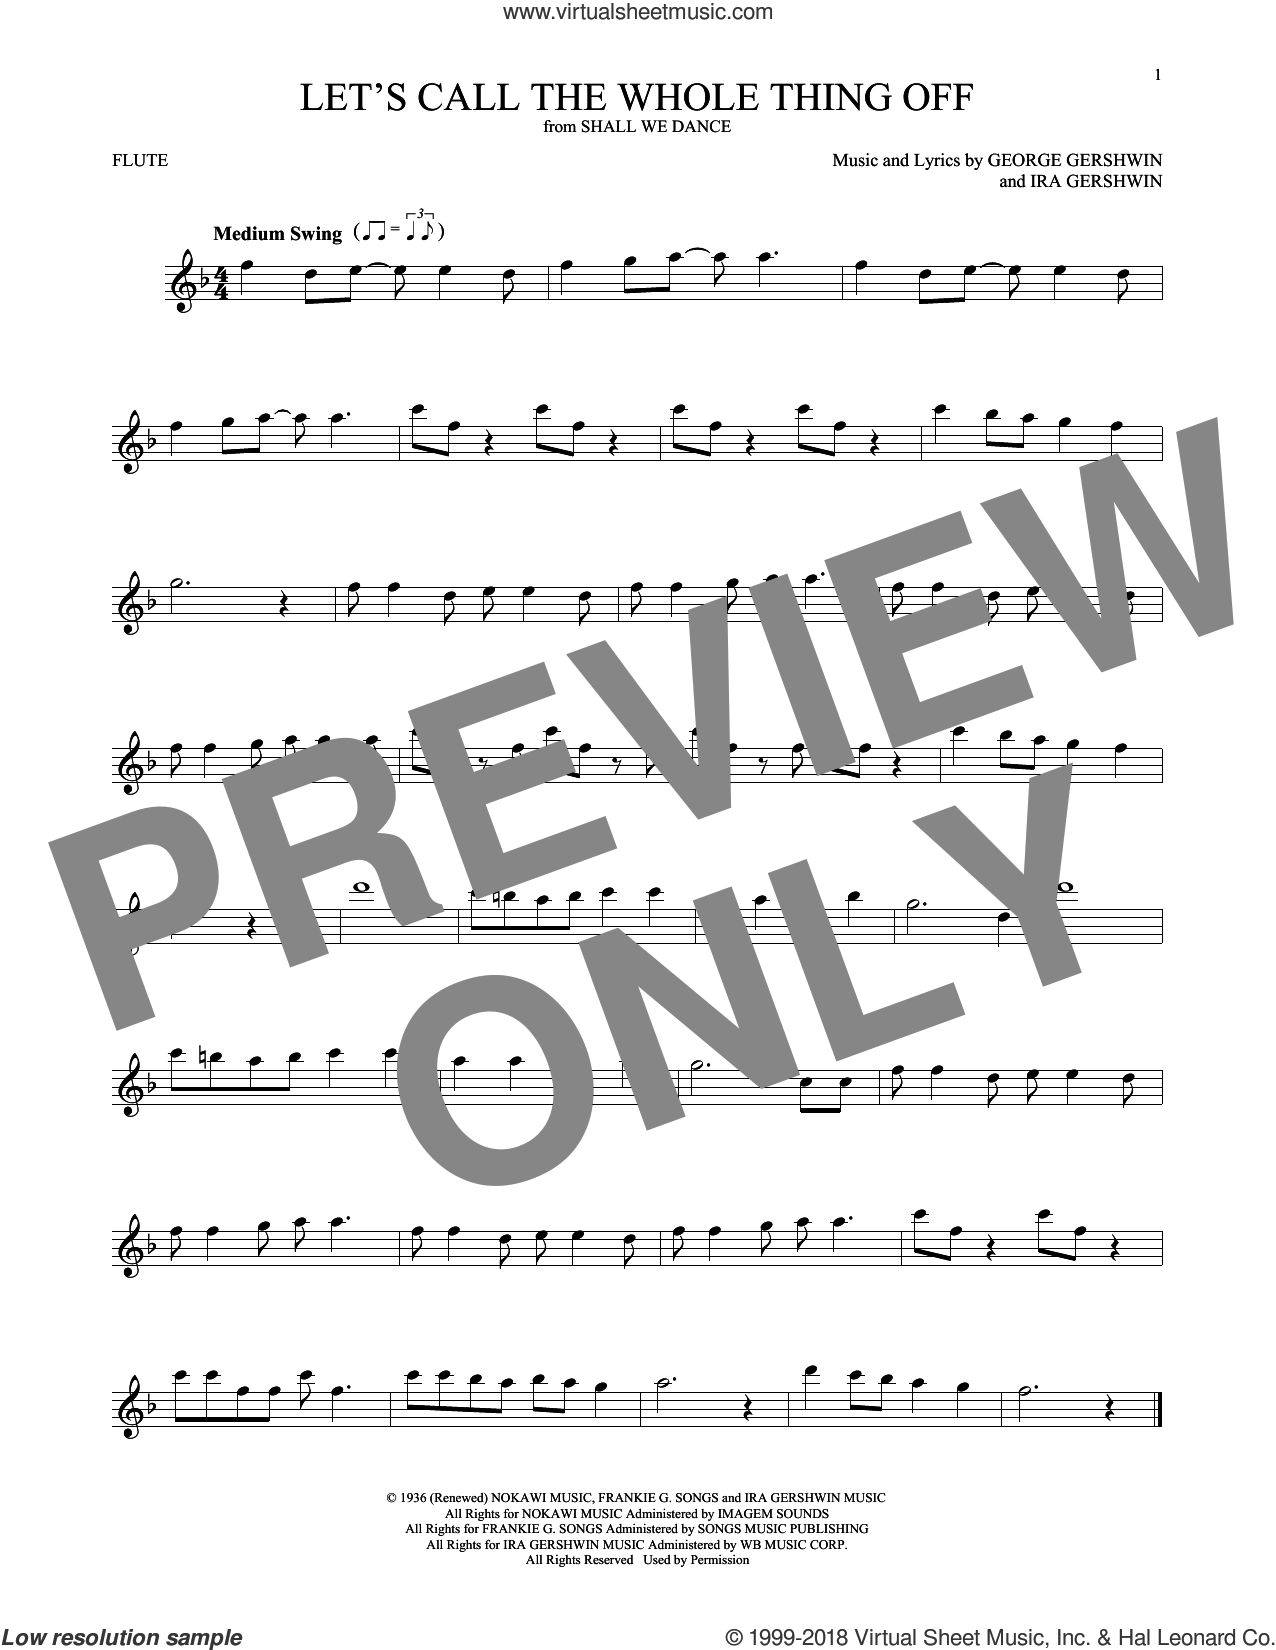 Let's Call The Whole Thing Off sheet music for flute solo by George Gershwin and Ira Gershwin, intermediate skill level